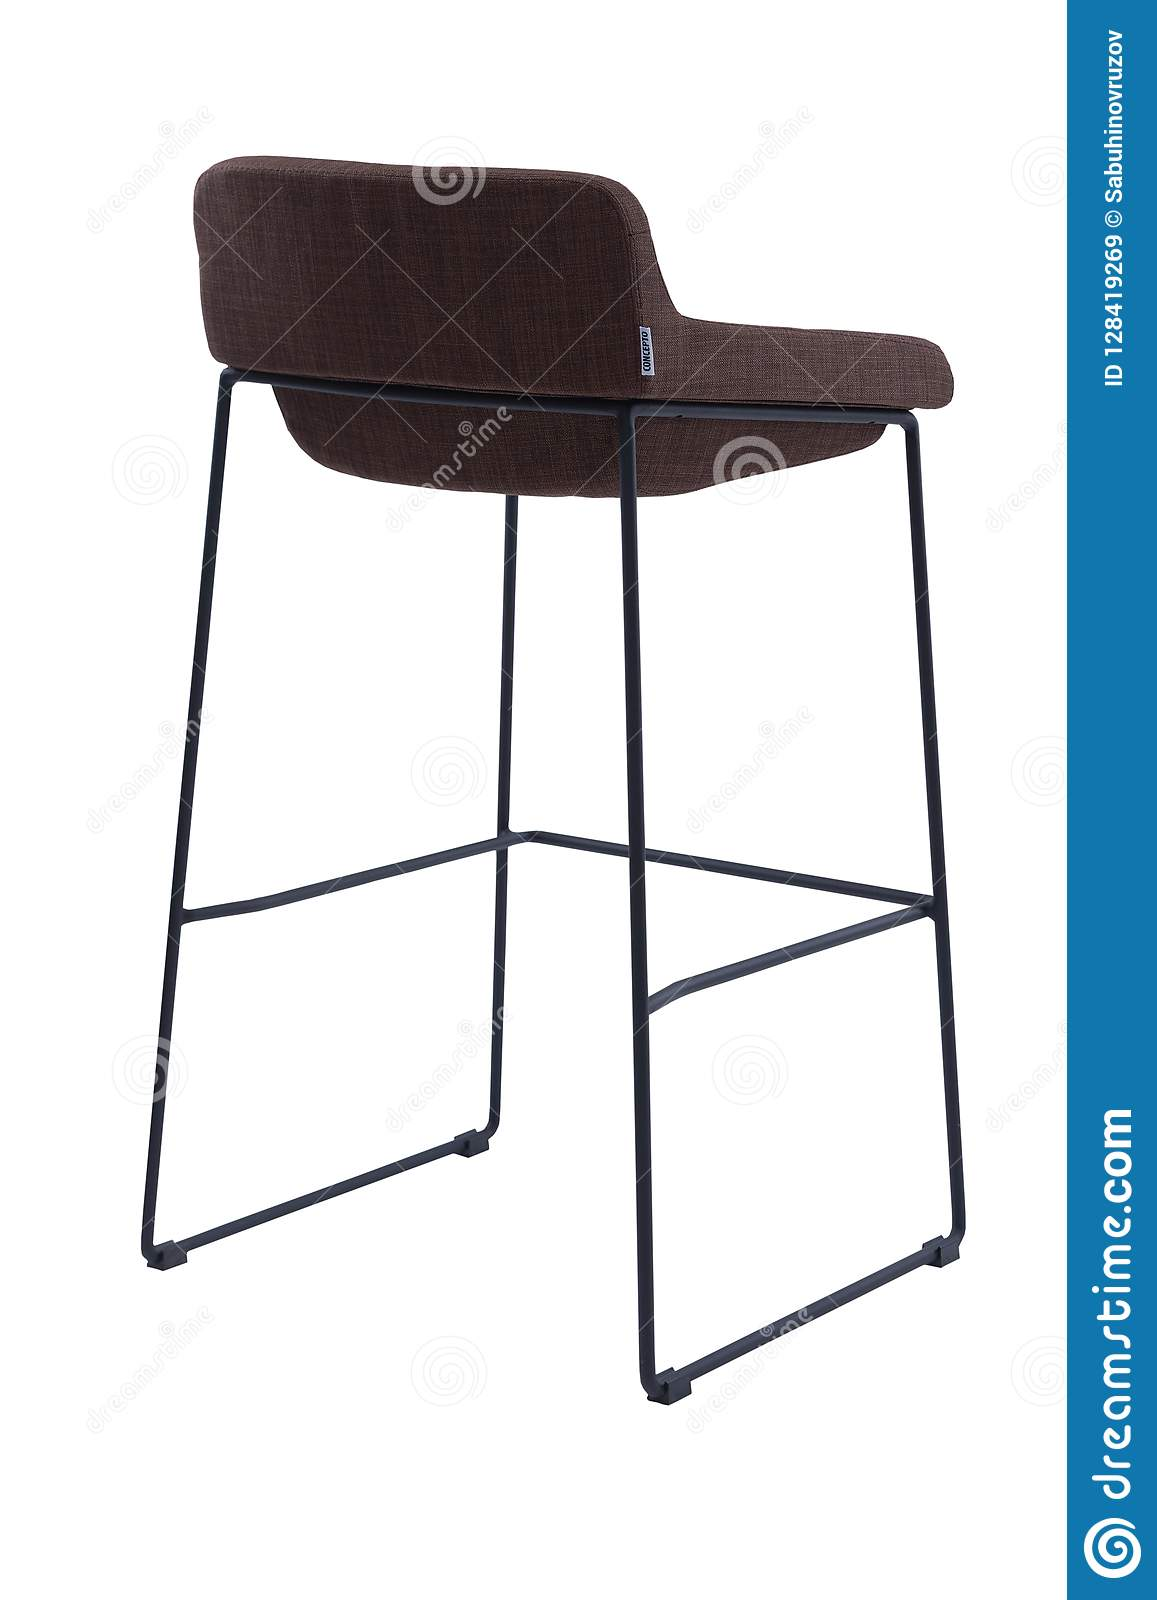 Fine Brown High Bar Stool Isolated On White Background Modern Squirreltailoven Fun Painted Chair Ideas Images Squirreltailovenorg